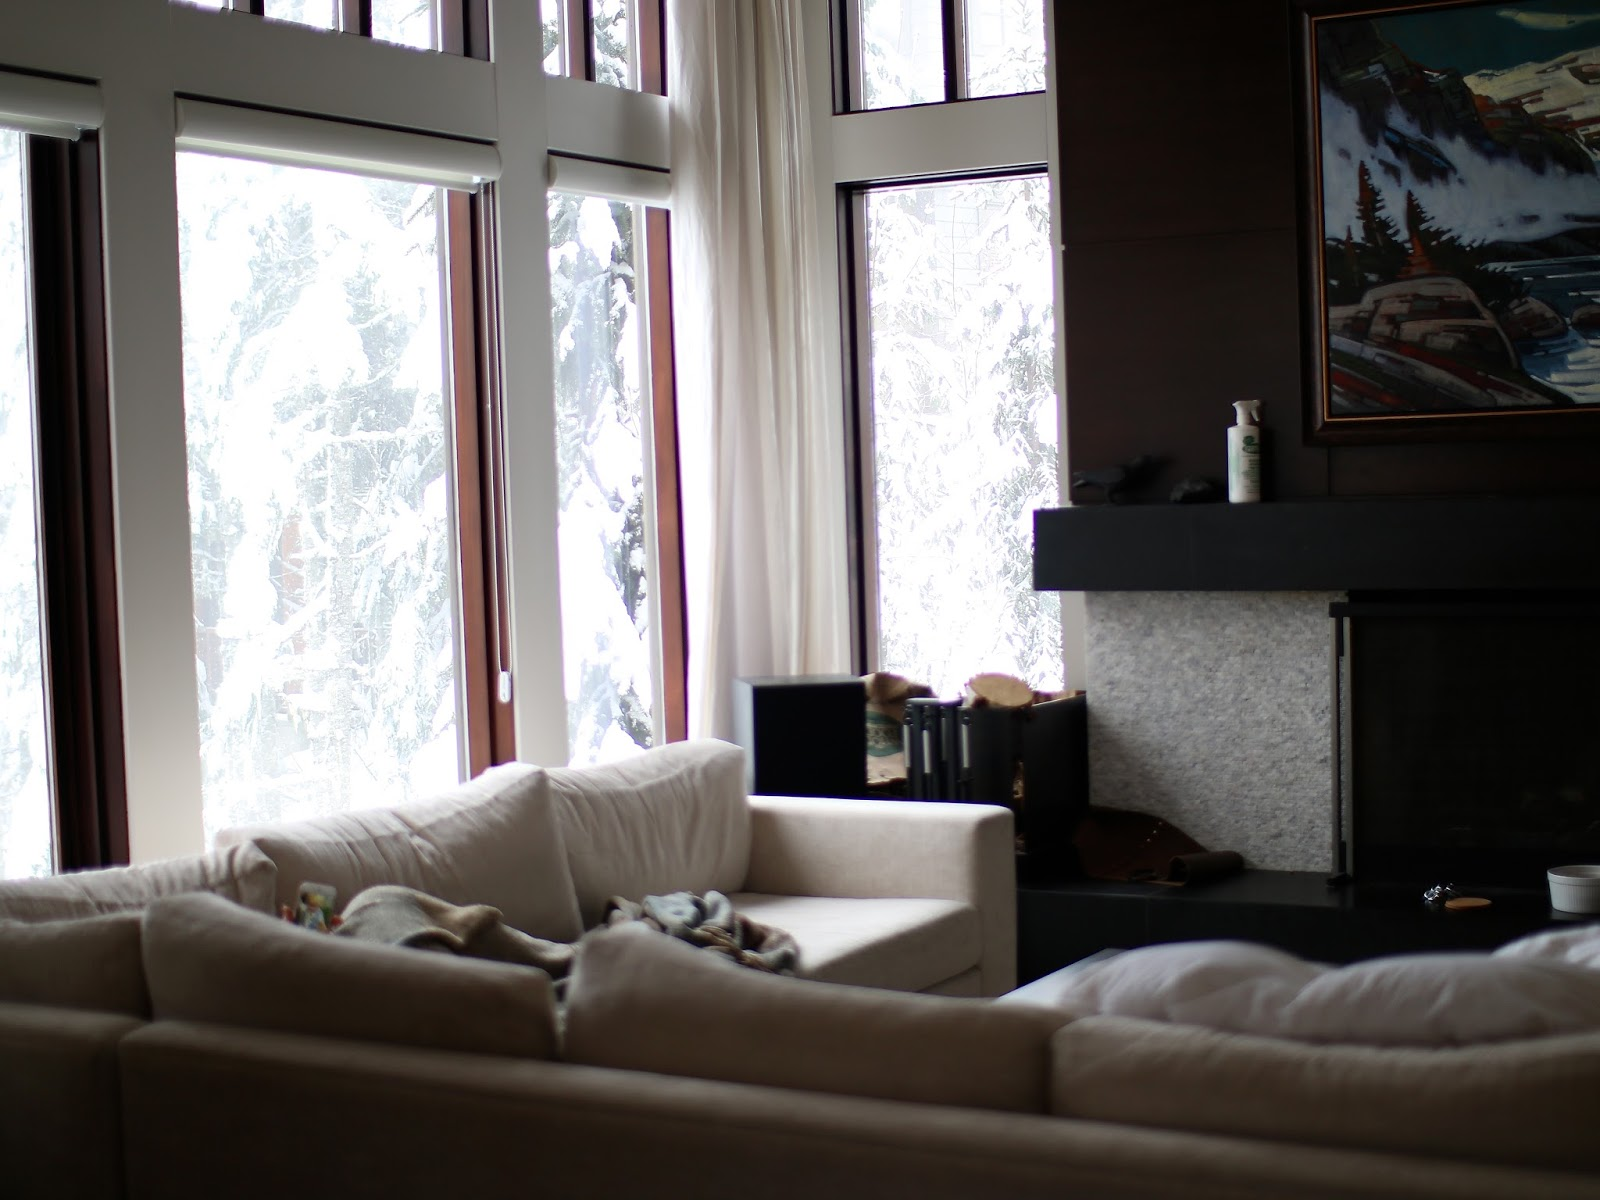 beautiful whistler property and interior decor in cabin